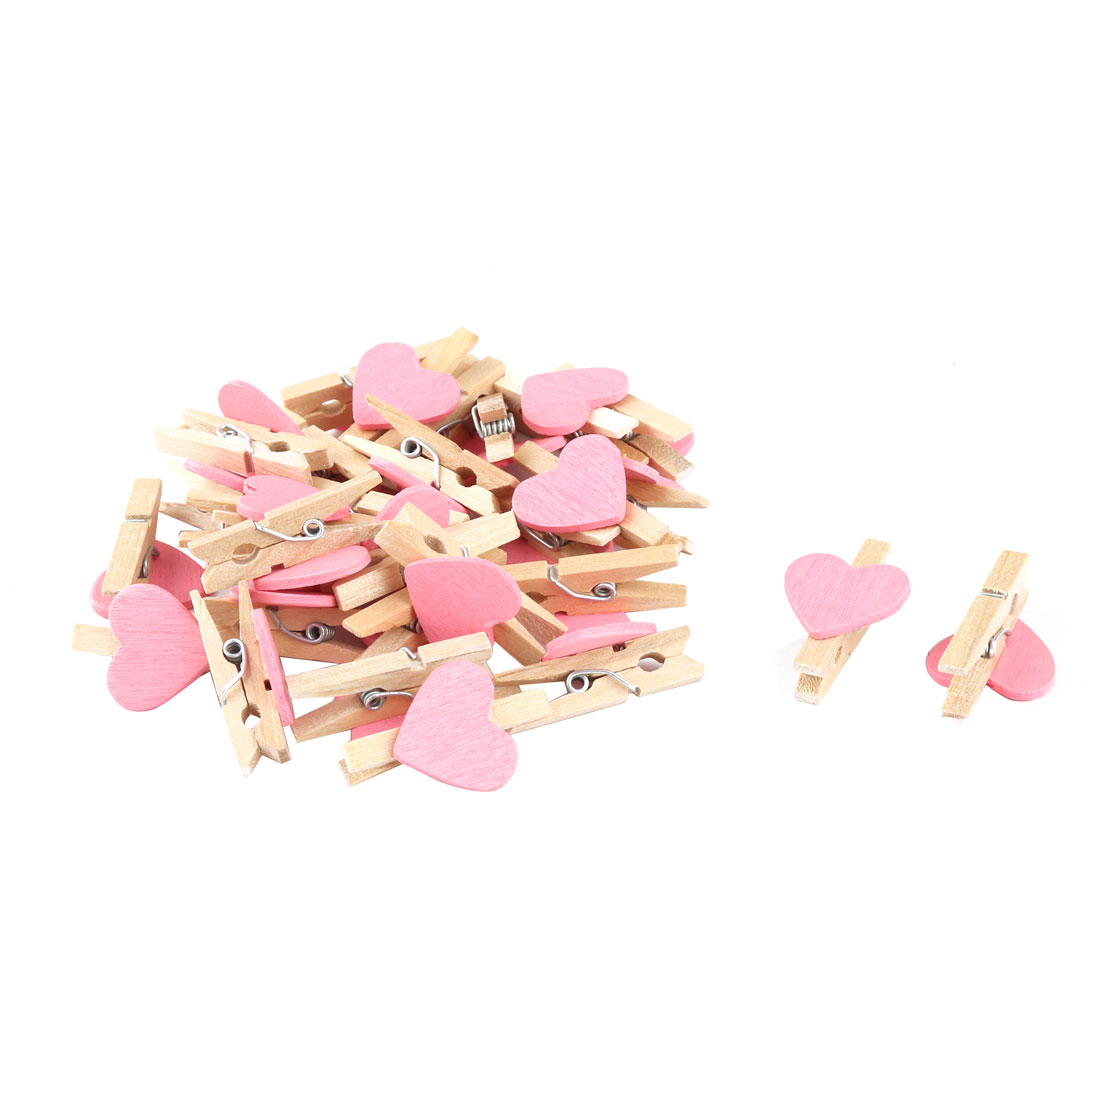 Home Party Wooden Heart Shaped DIY Craft Photo Post Card Pegs Clips Pink 30pcs